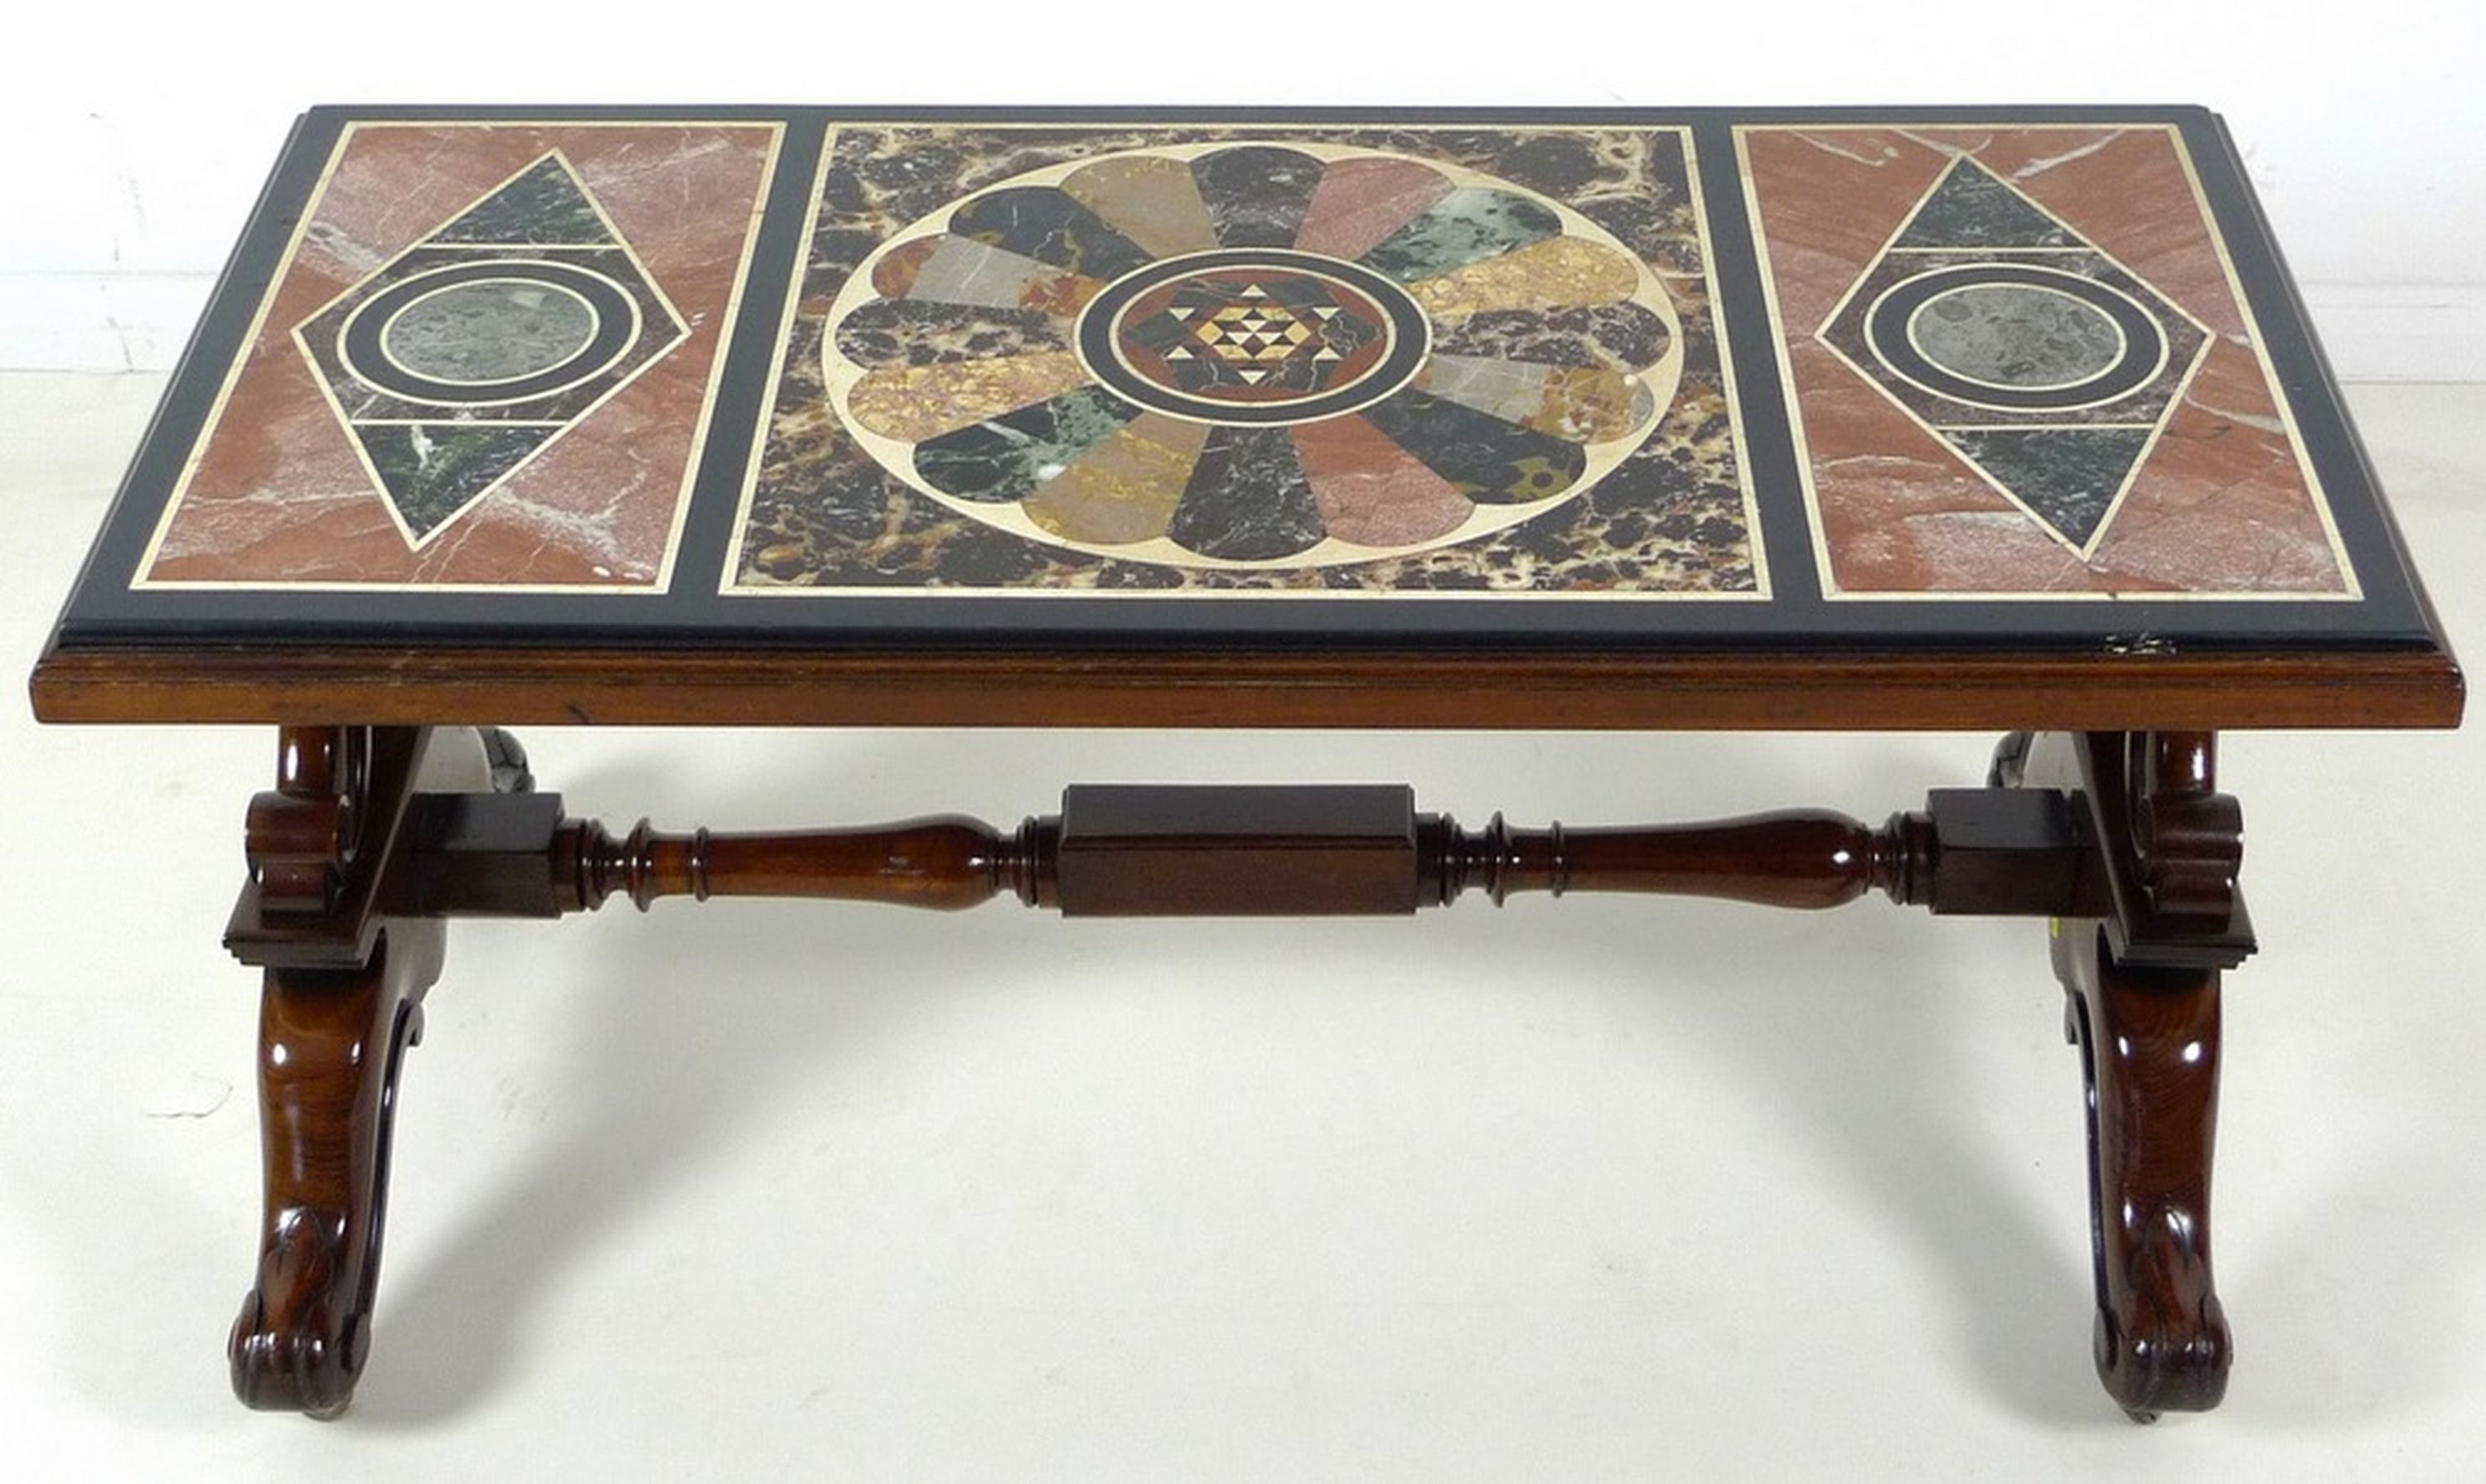 Antique Marble Pietra Dura Table Top On A Later Mahogany Victorian Style Coffee Table Base